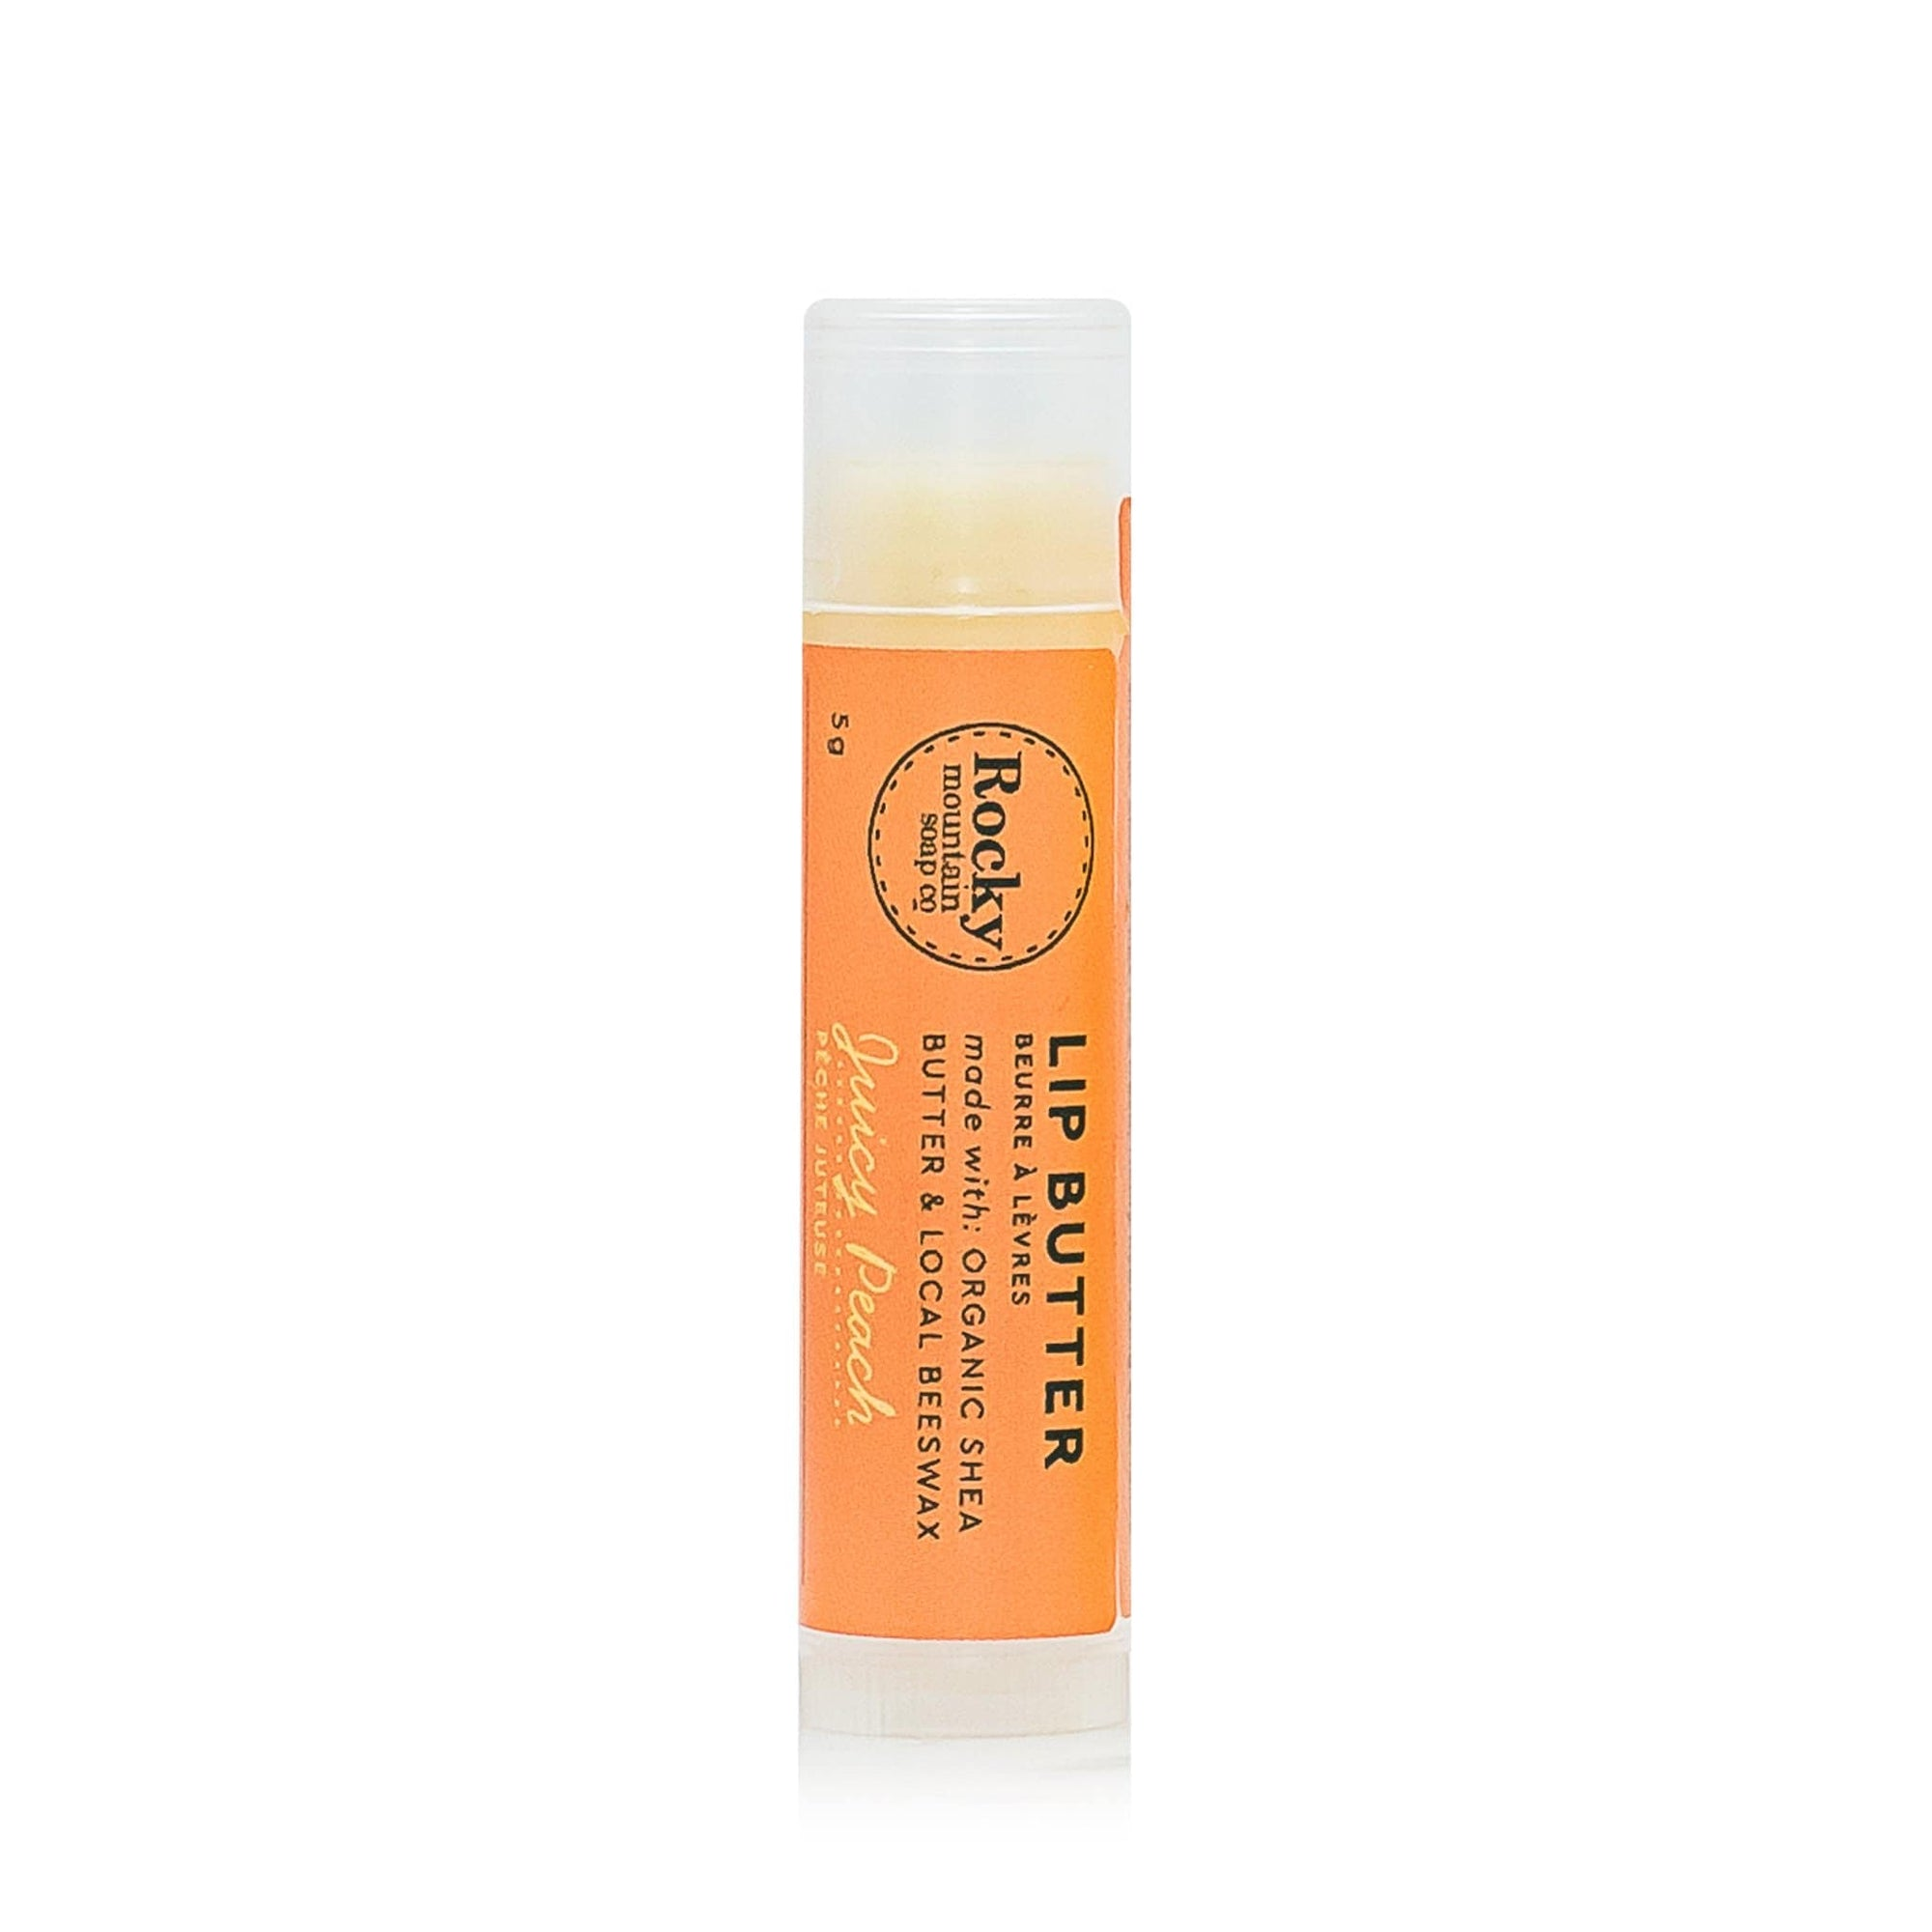 Juicy Peach Lip Butter